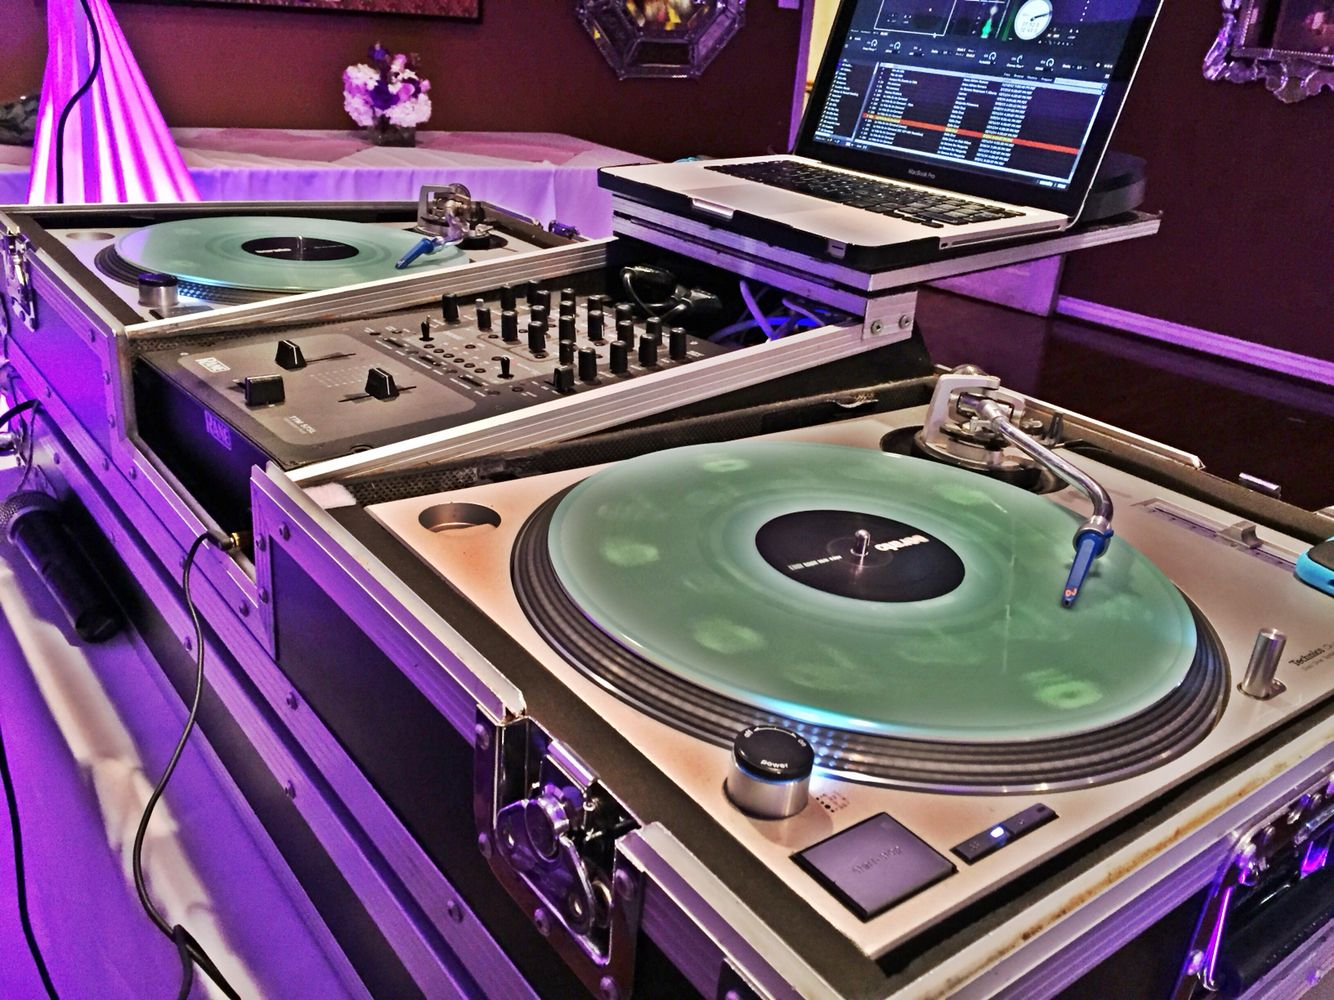 Location Steven S Steak House Commerce Ca Purple Up Lights With Glow In The Dark Serato Control Vinyl Www Duoonline Net Glow In The Dark Steakhouse Lights